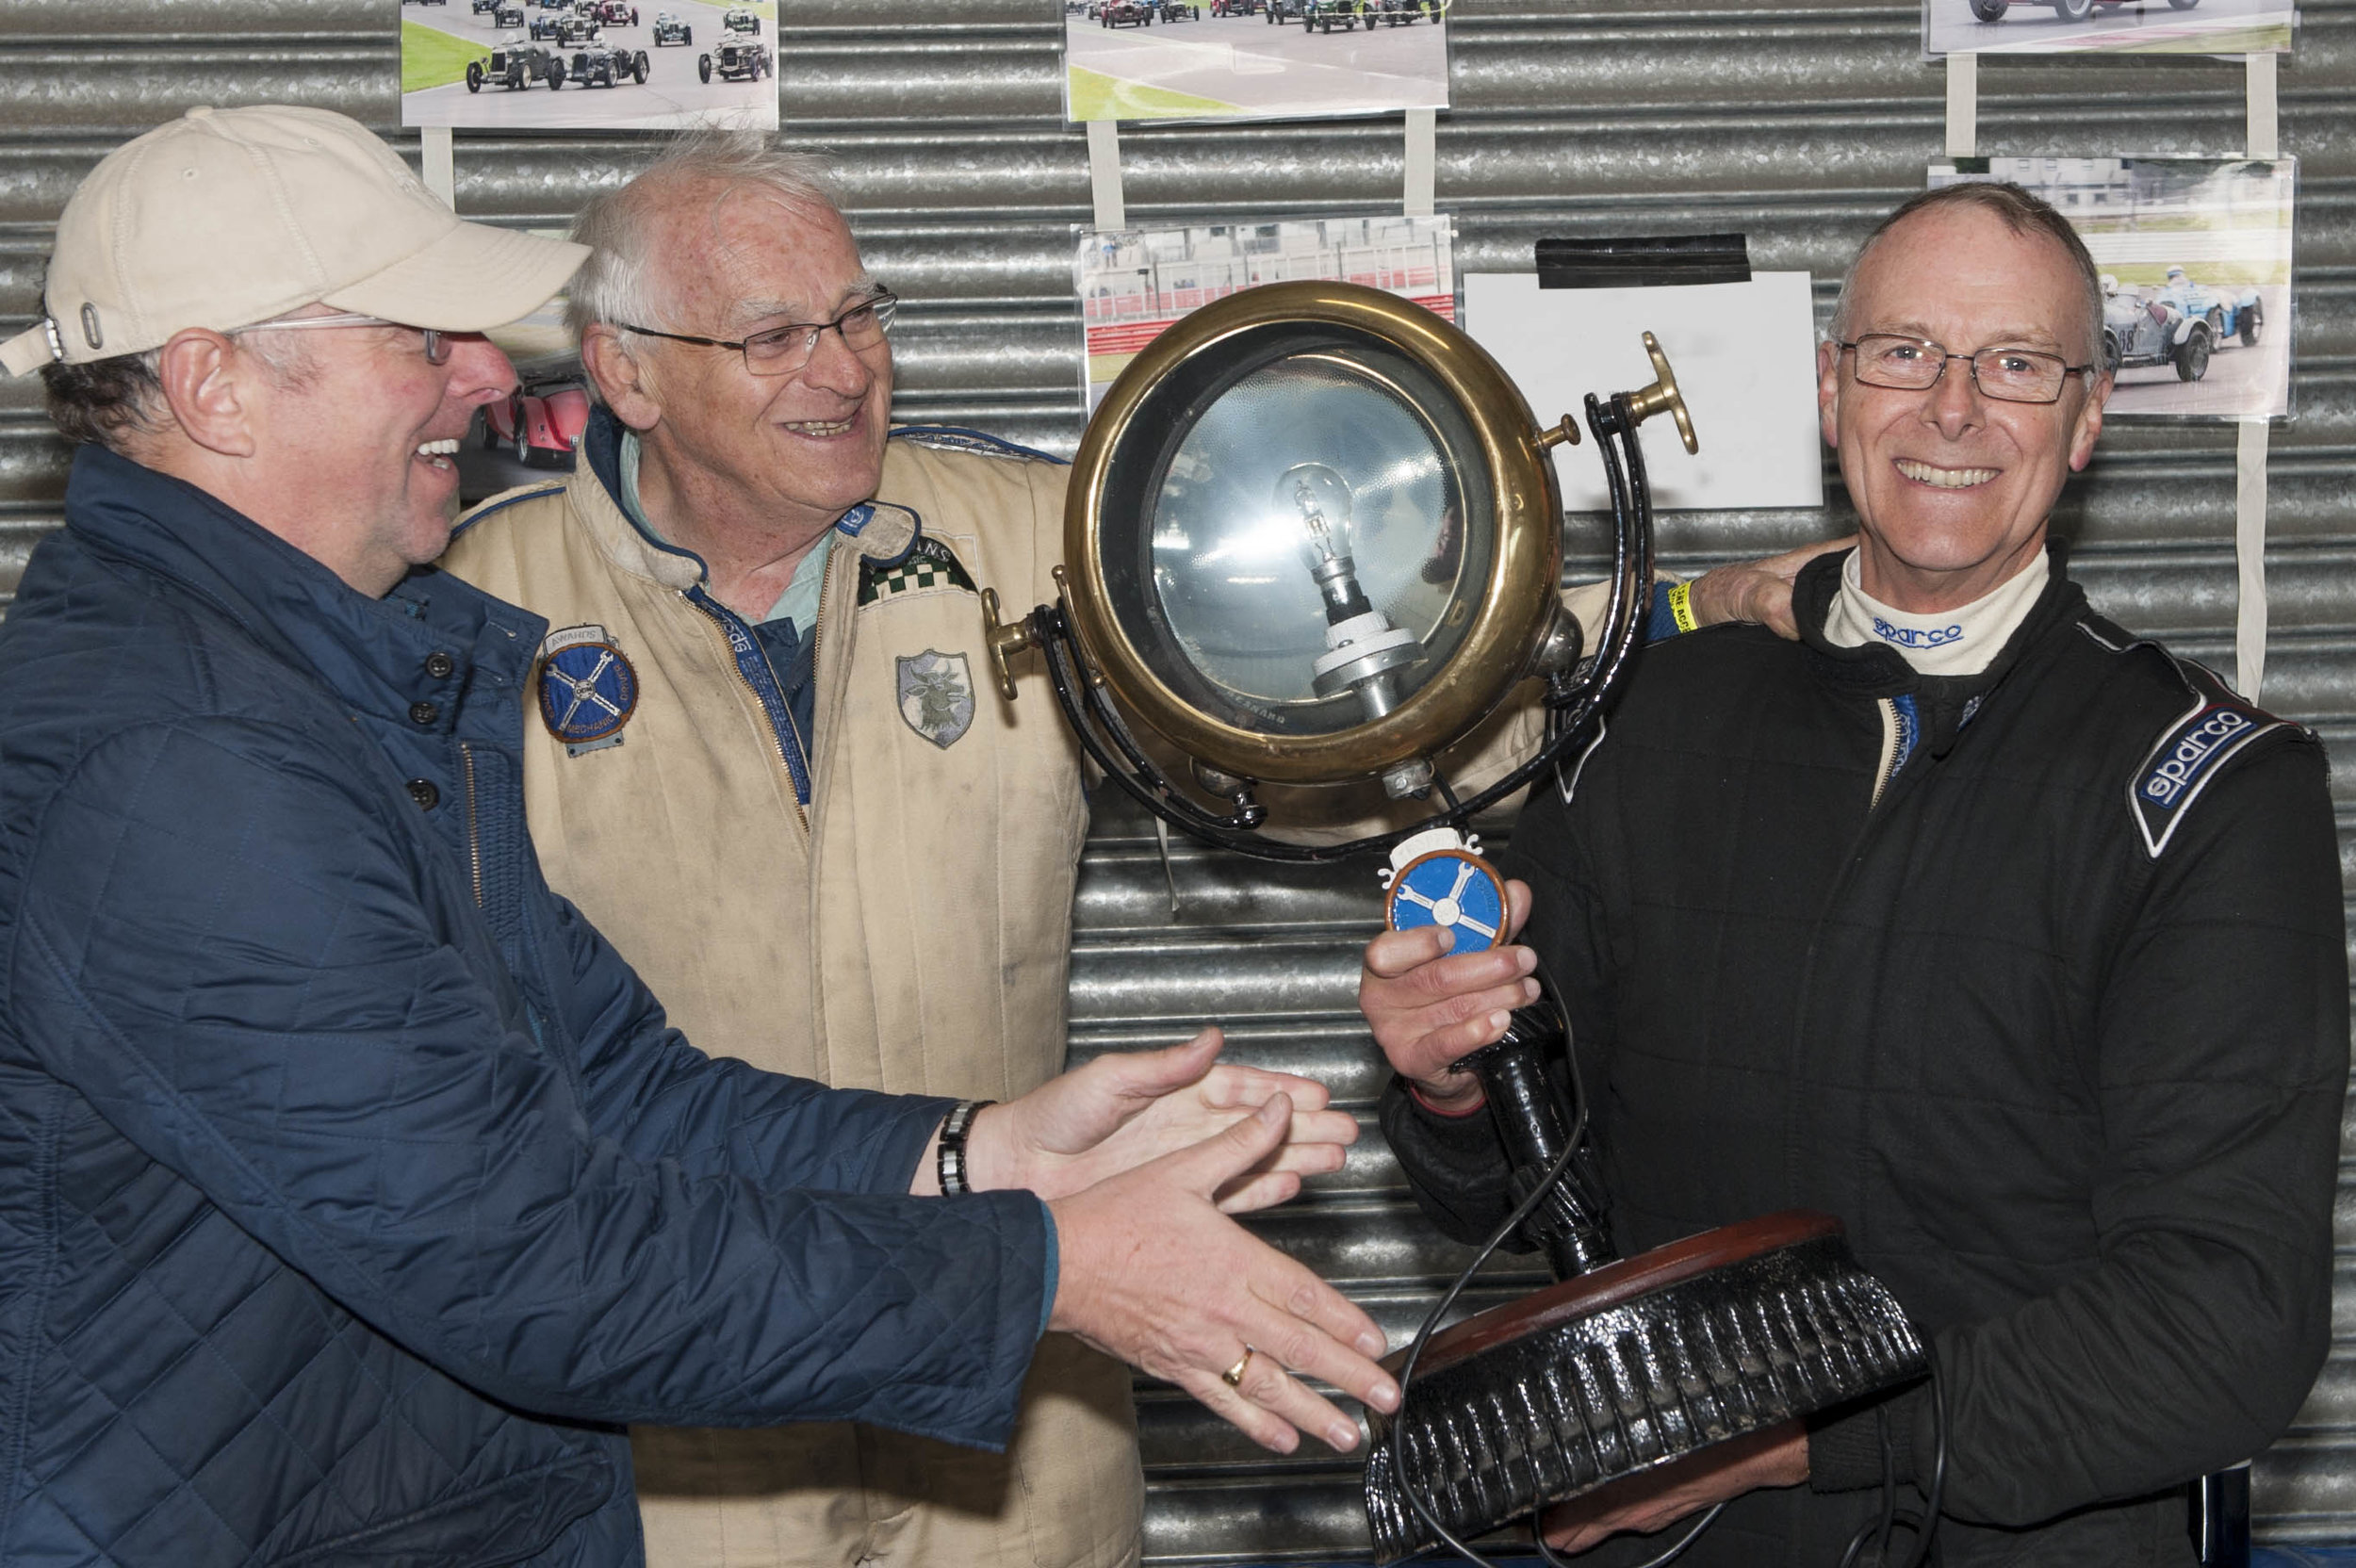 Tim Kneller receives the ODM trophy from Simon Edwards, Patron John Guyatt presiding:  Peter McFadyen